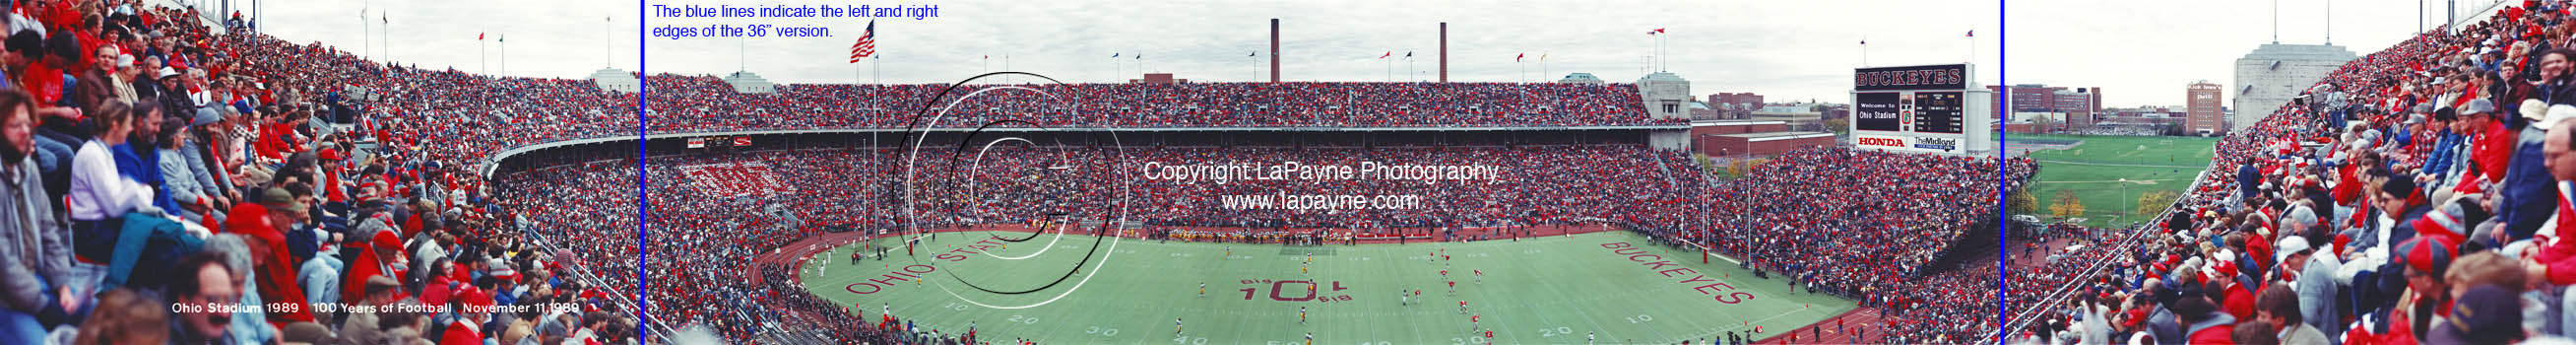 Ohio Stadium 1989 Columbus Ohio